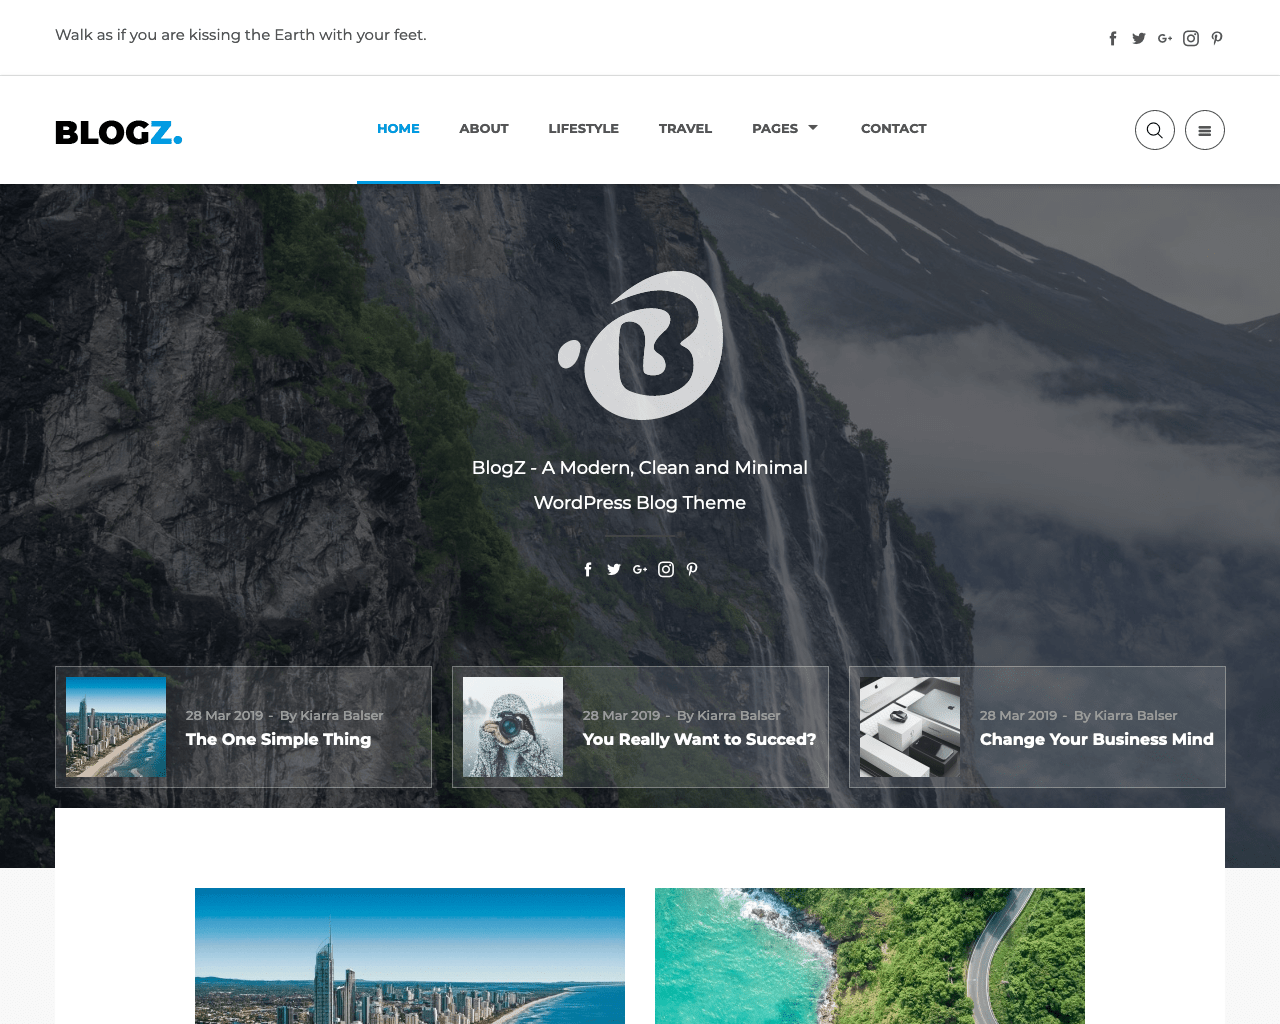 BlogZ WordPress Blog Theme